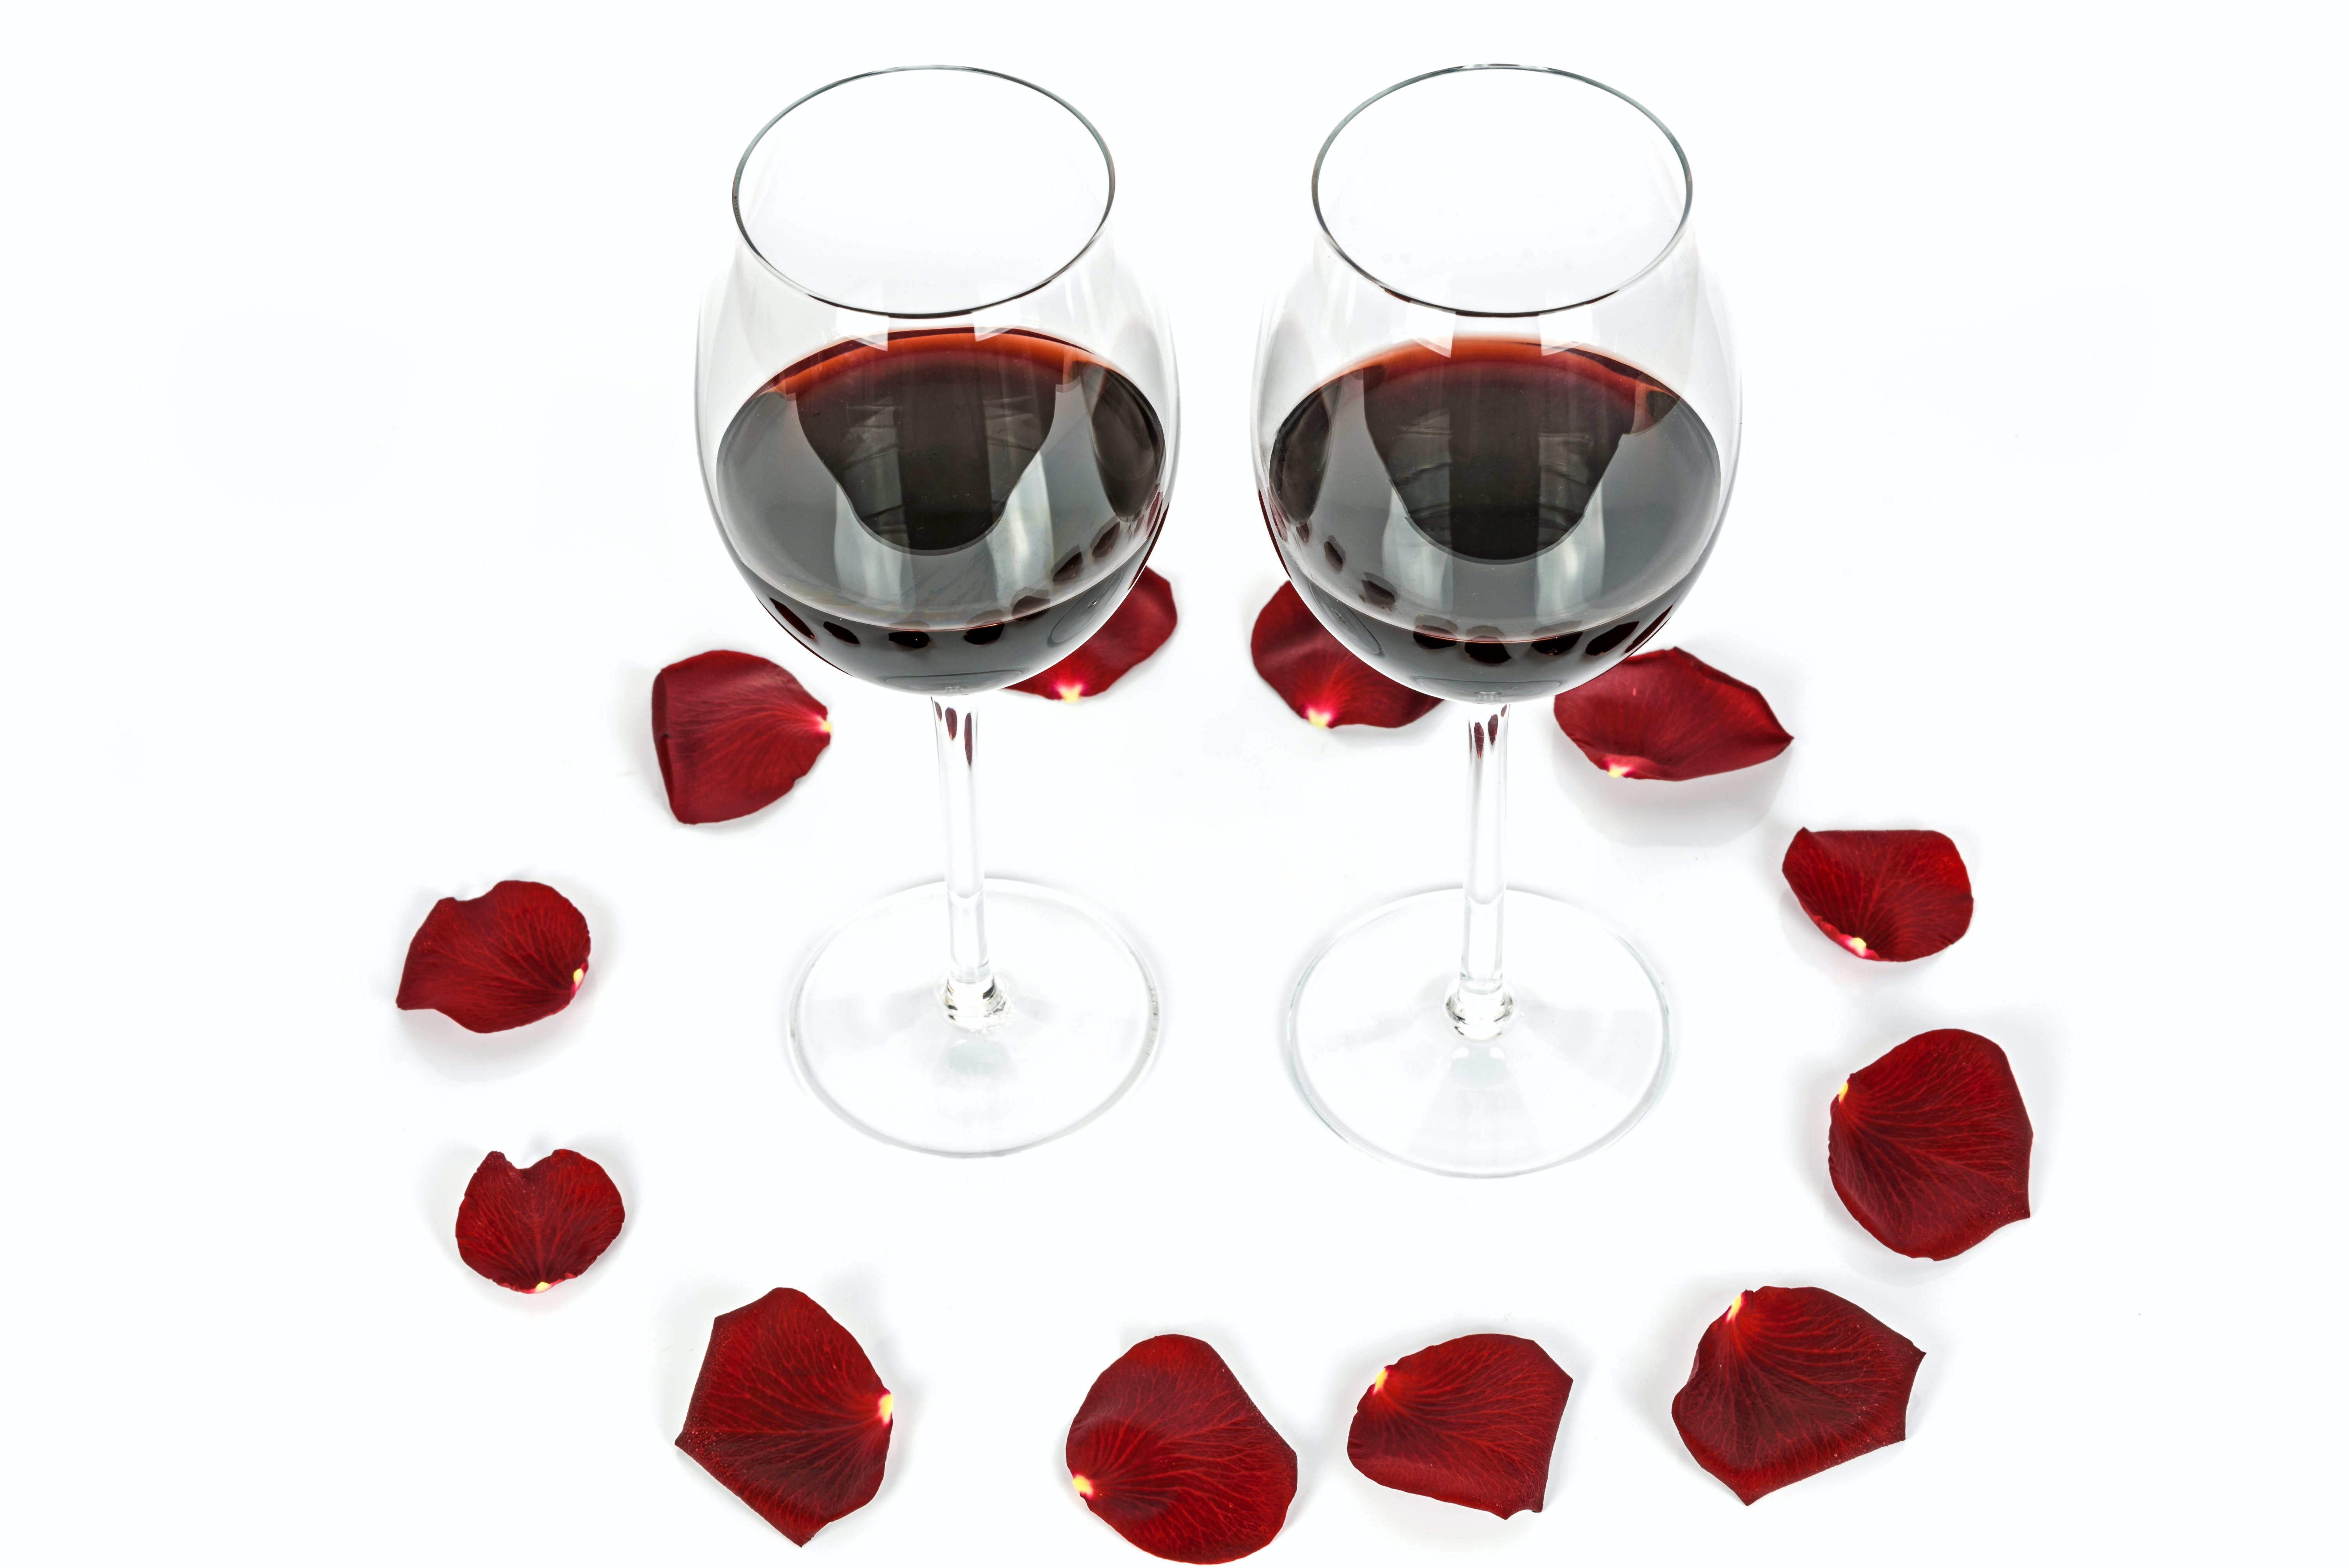 Two Wine-filled Glasses Surrounded by Petals